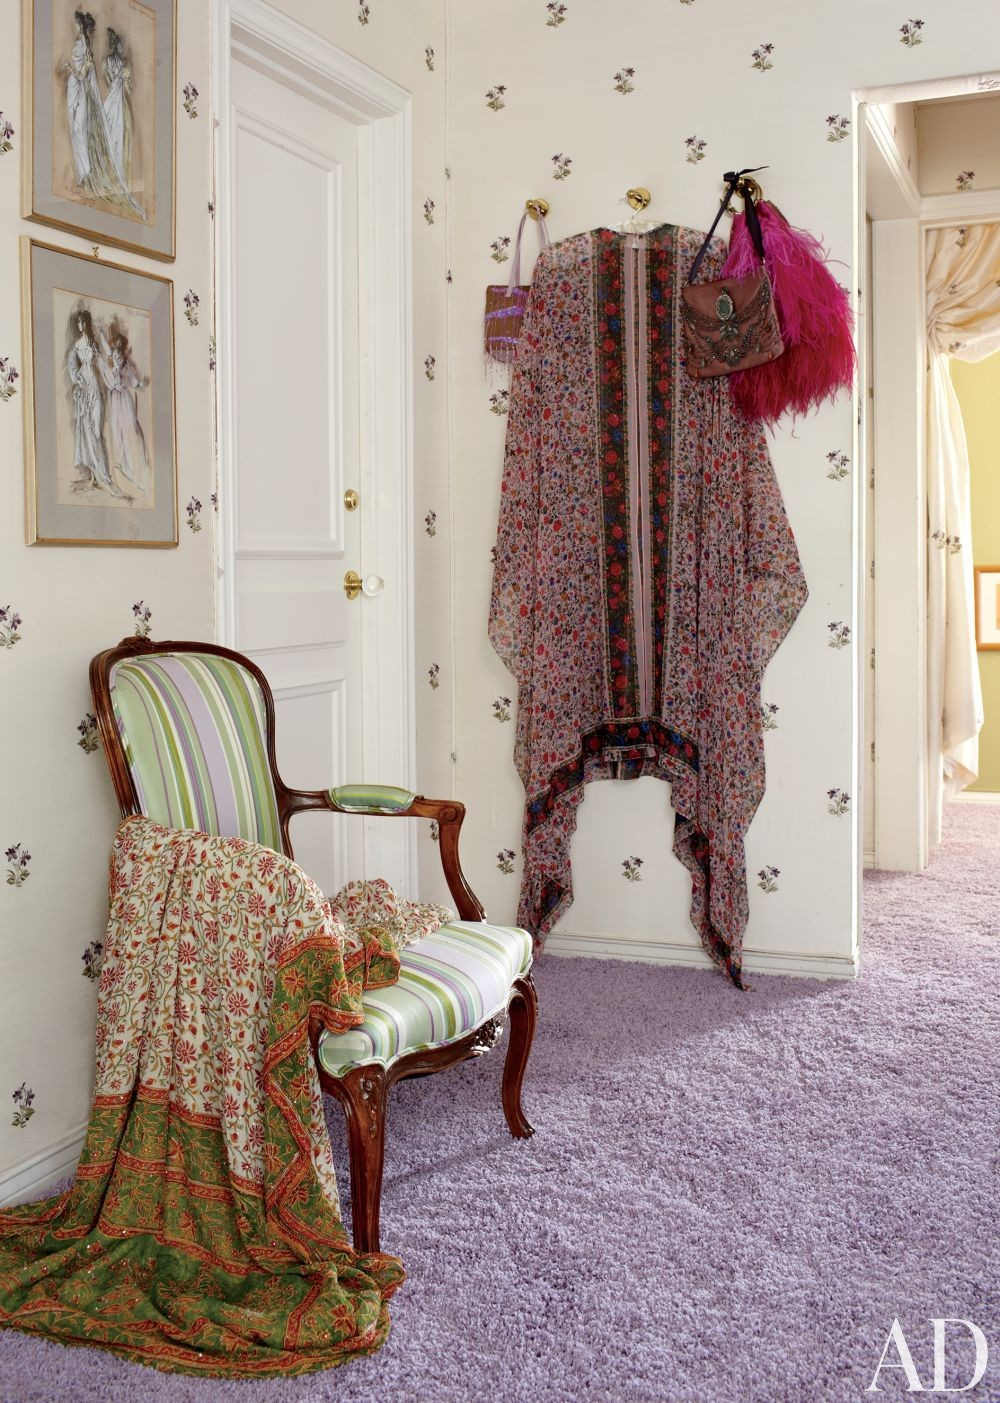 Traditional Dressing Room/Closet by Waldo\'s Designs in Bel Air, California